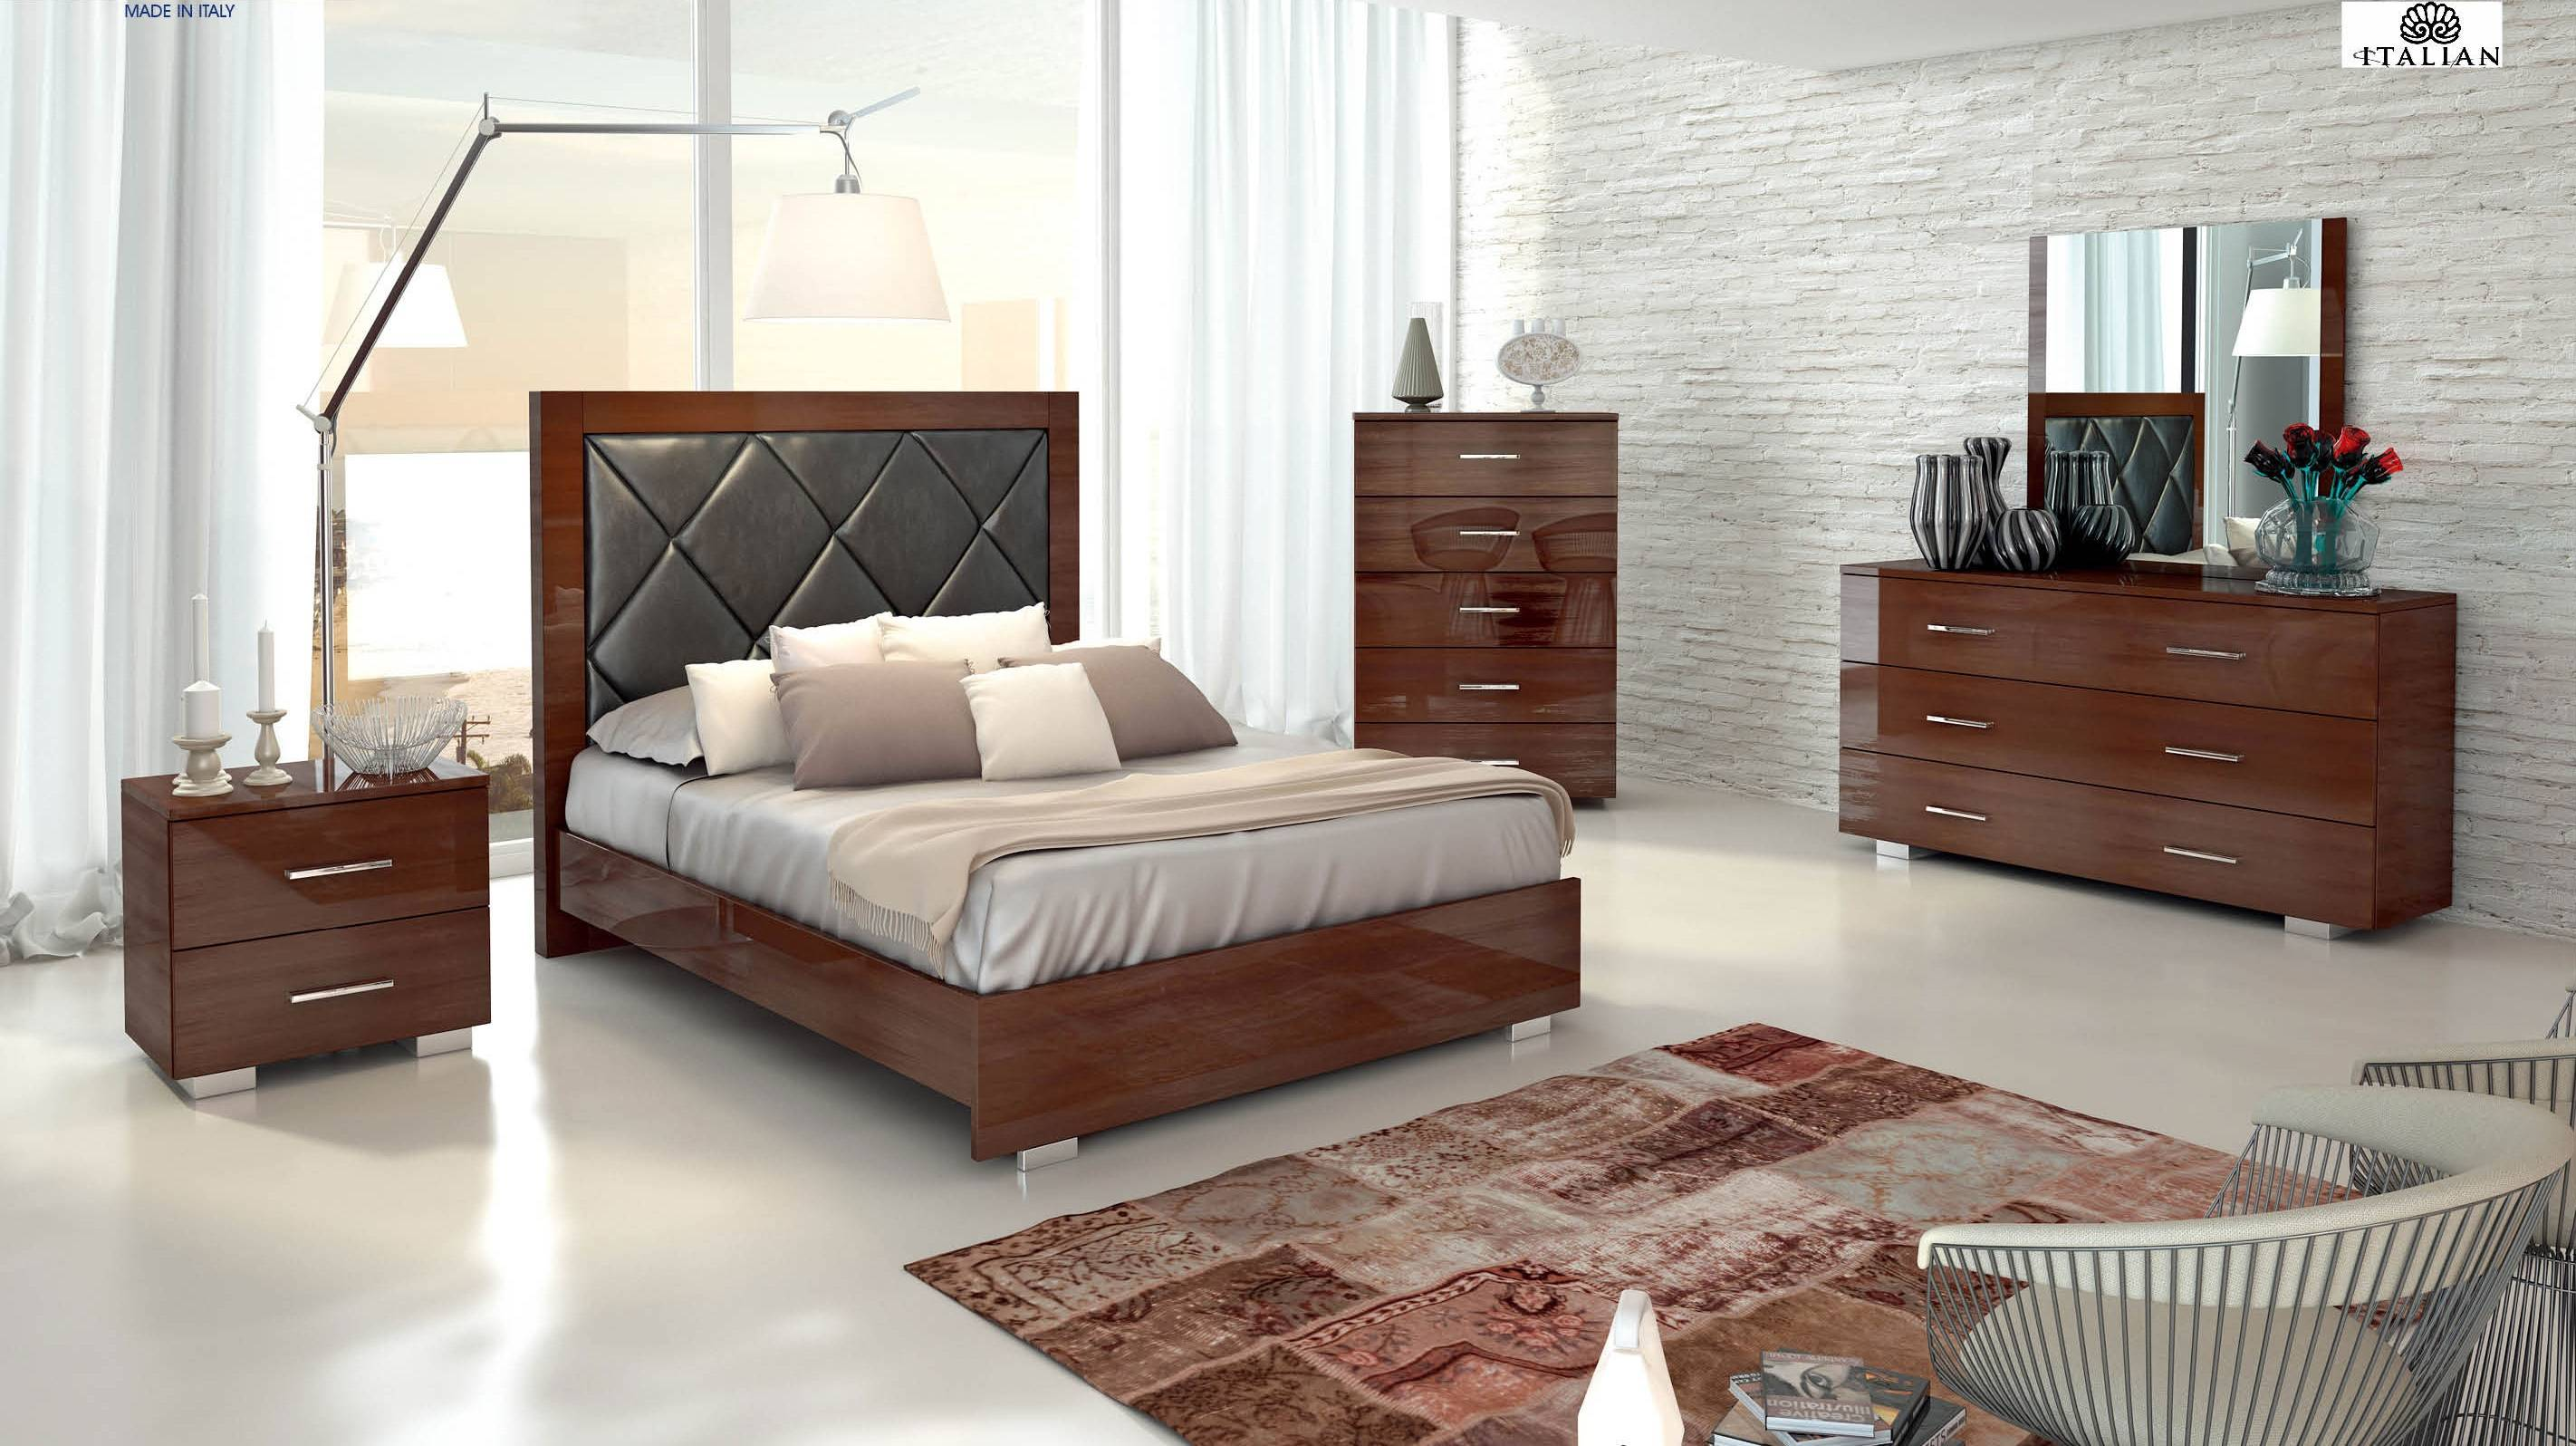 Made in italy wood modern high end furniture indianapolis High end bedroom design